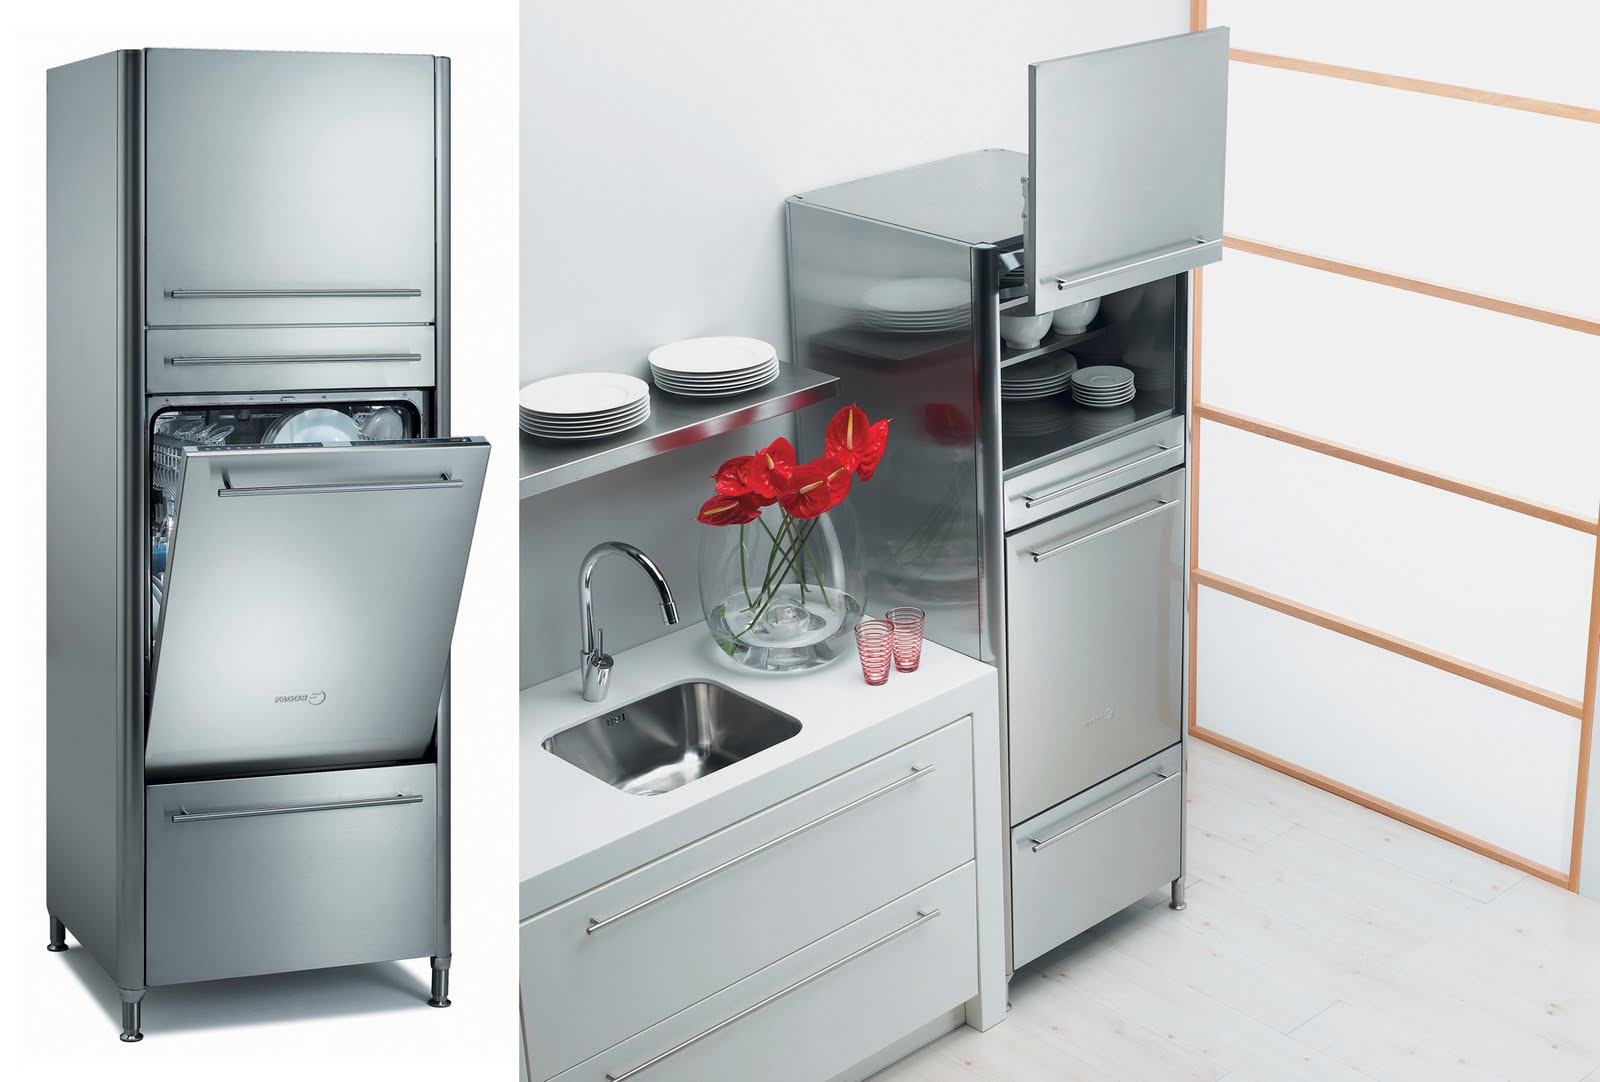 Wonderful Small Kitchen Appliances for Small Spaces 1600 x 1082 · 130 kB · jpeg